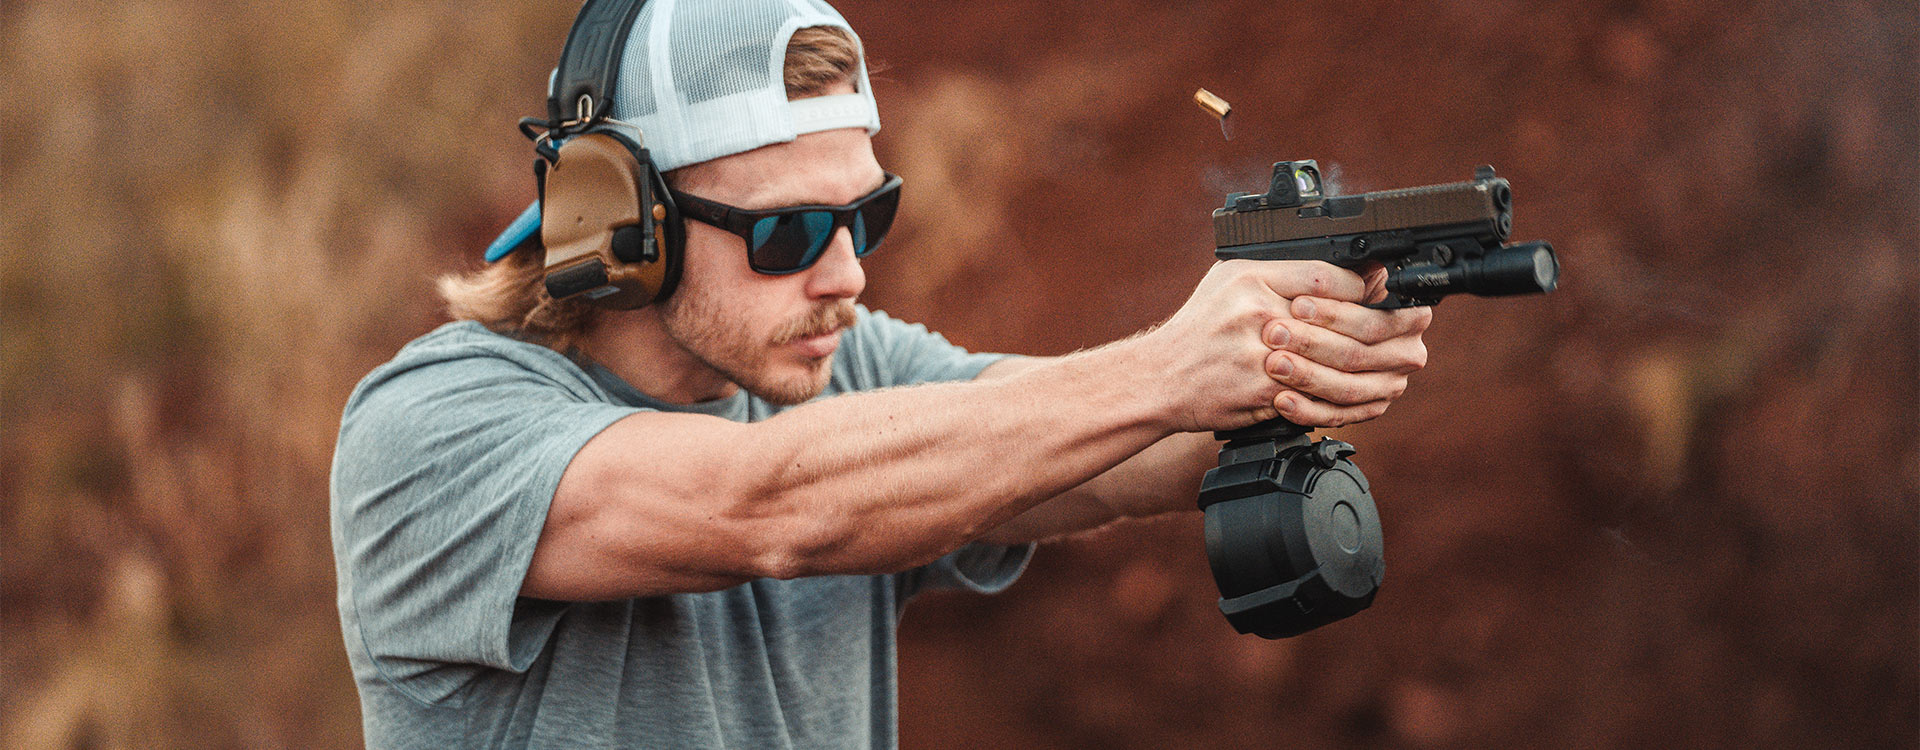 Shooter in Magpul Eyewear firing custom Glock with Magpul PMAG D-50 GL9 drum